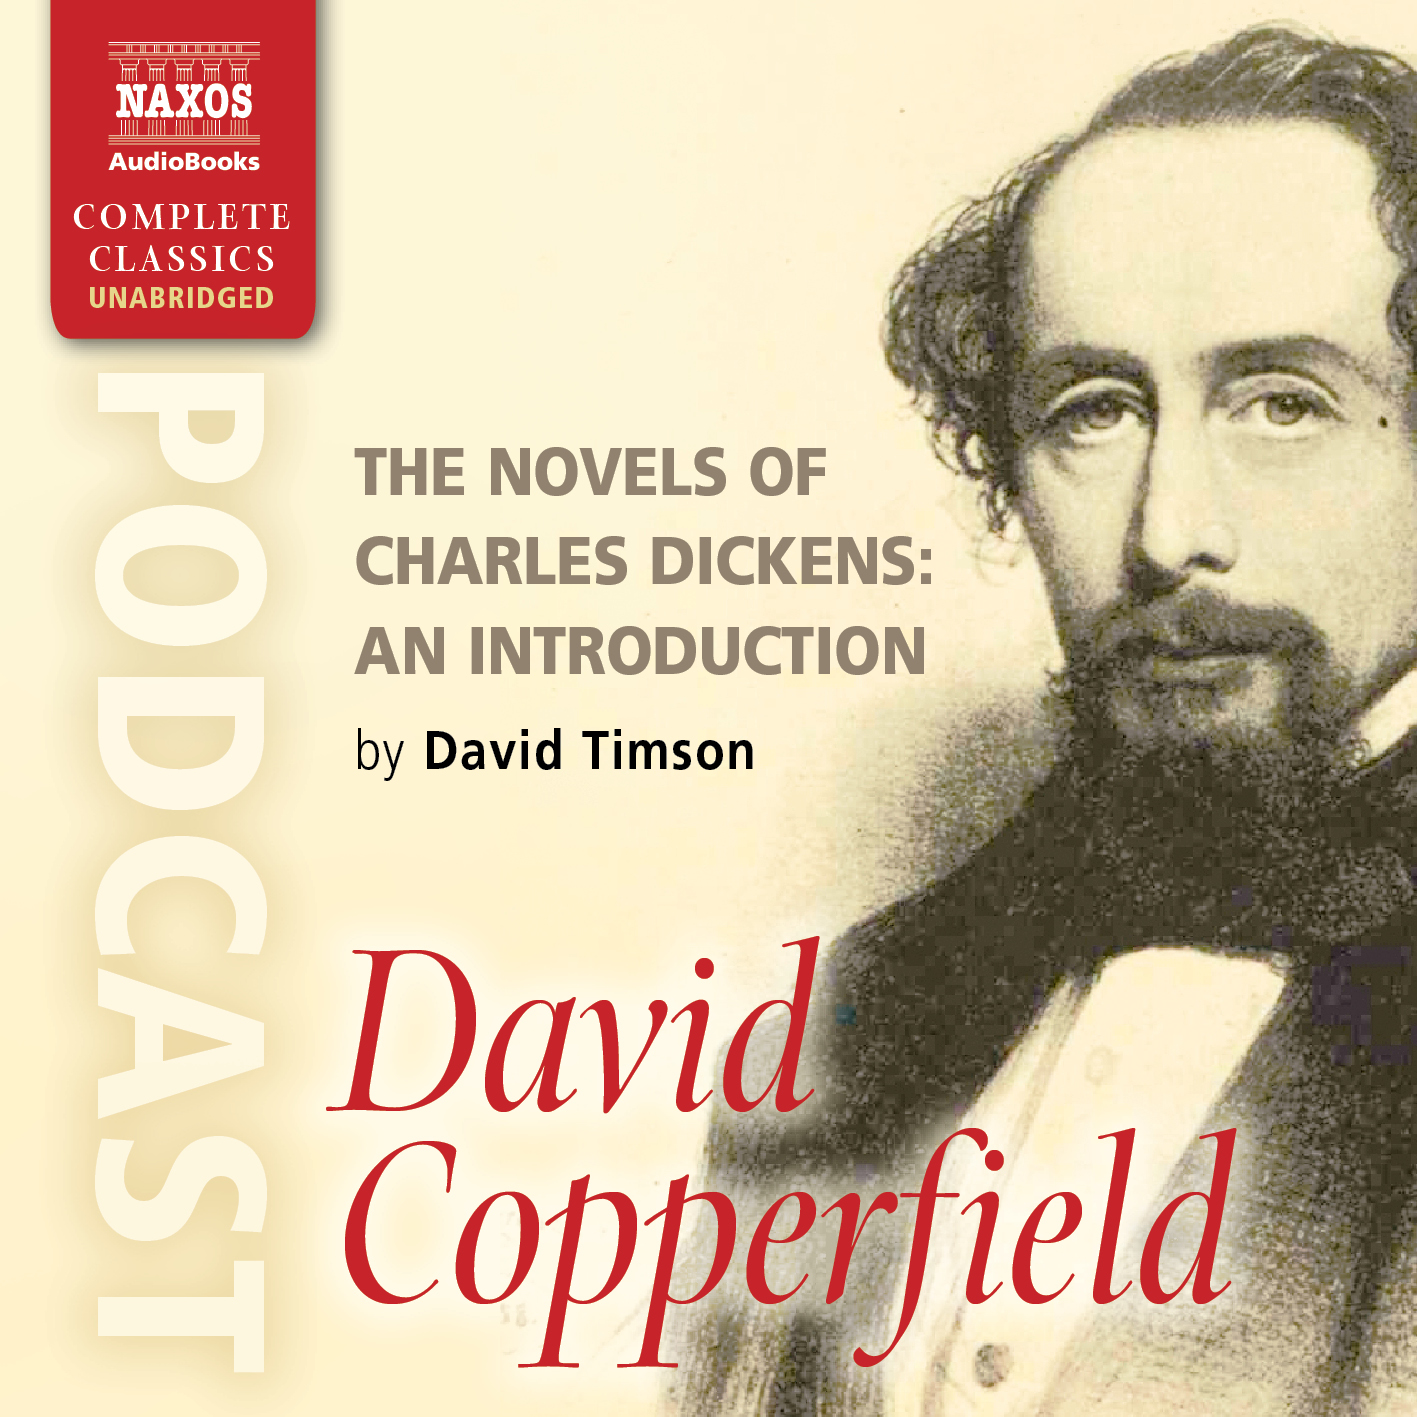 https://naxosaudiobooks.com/wp-content/uploads/2019/08/NA0387_David_Copperfield_Podcast.jpg